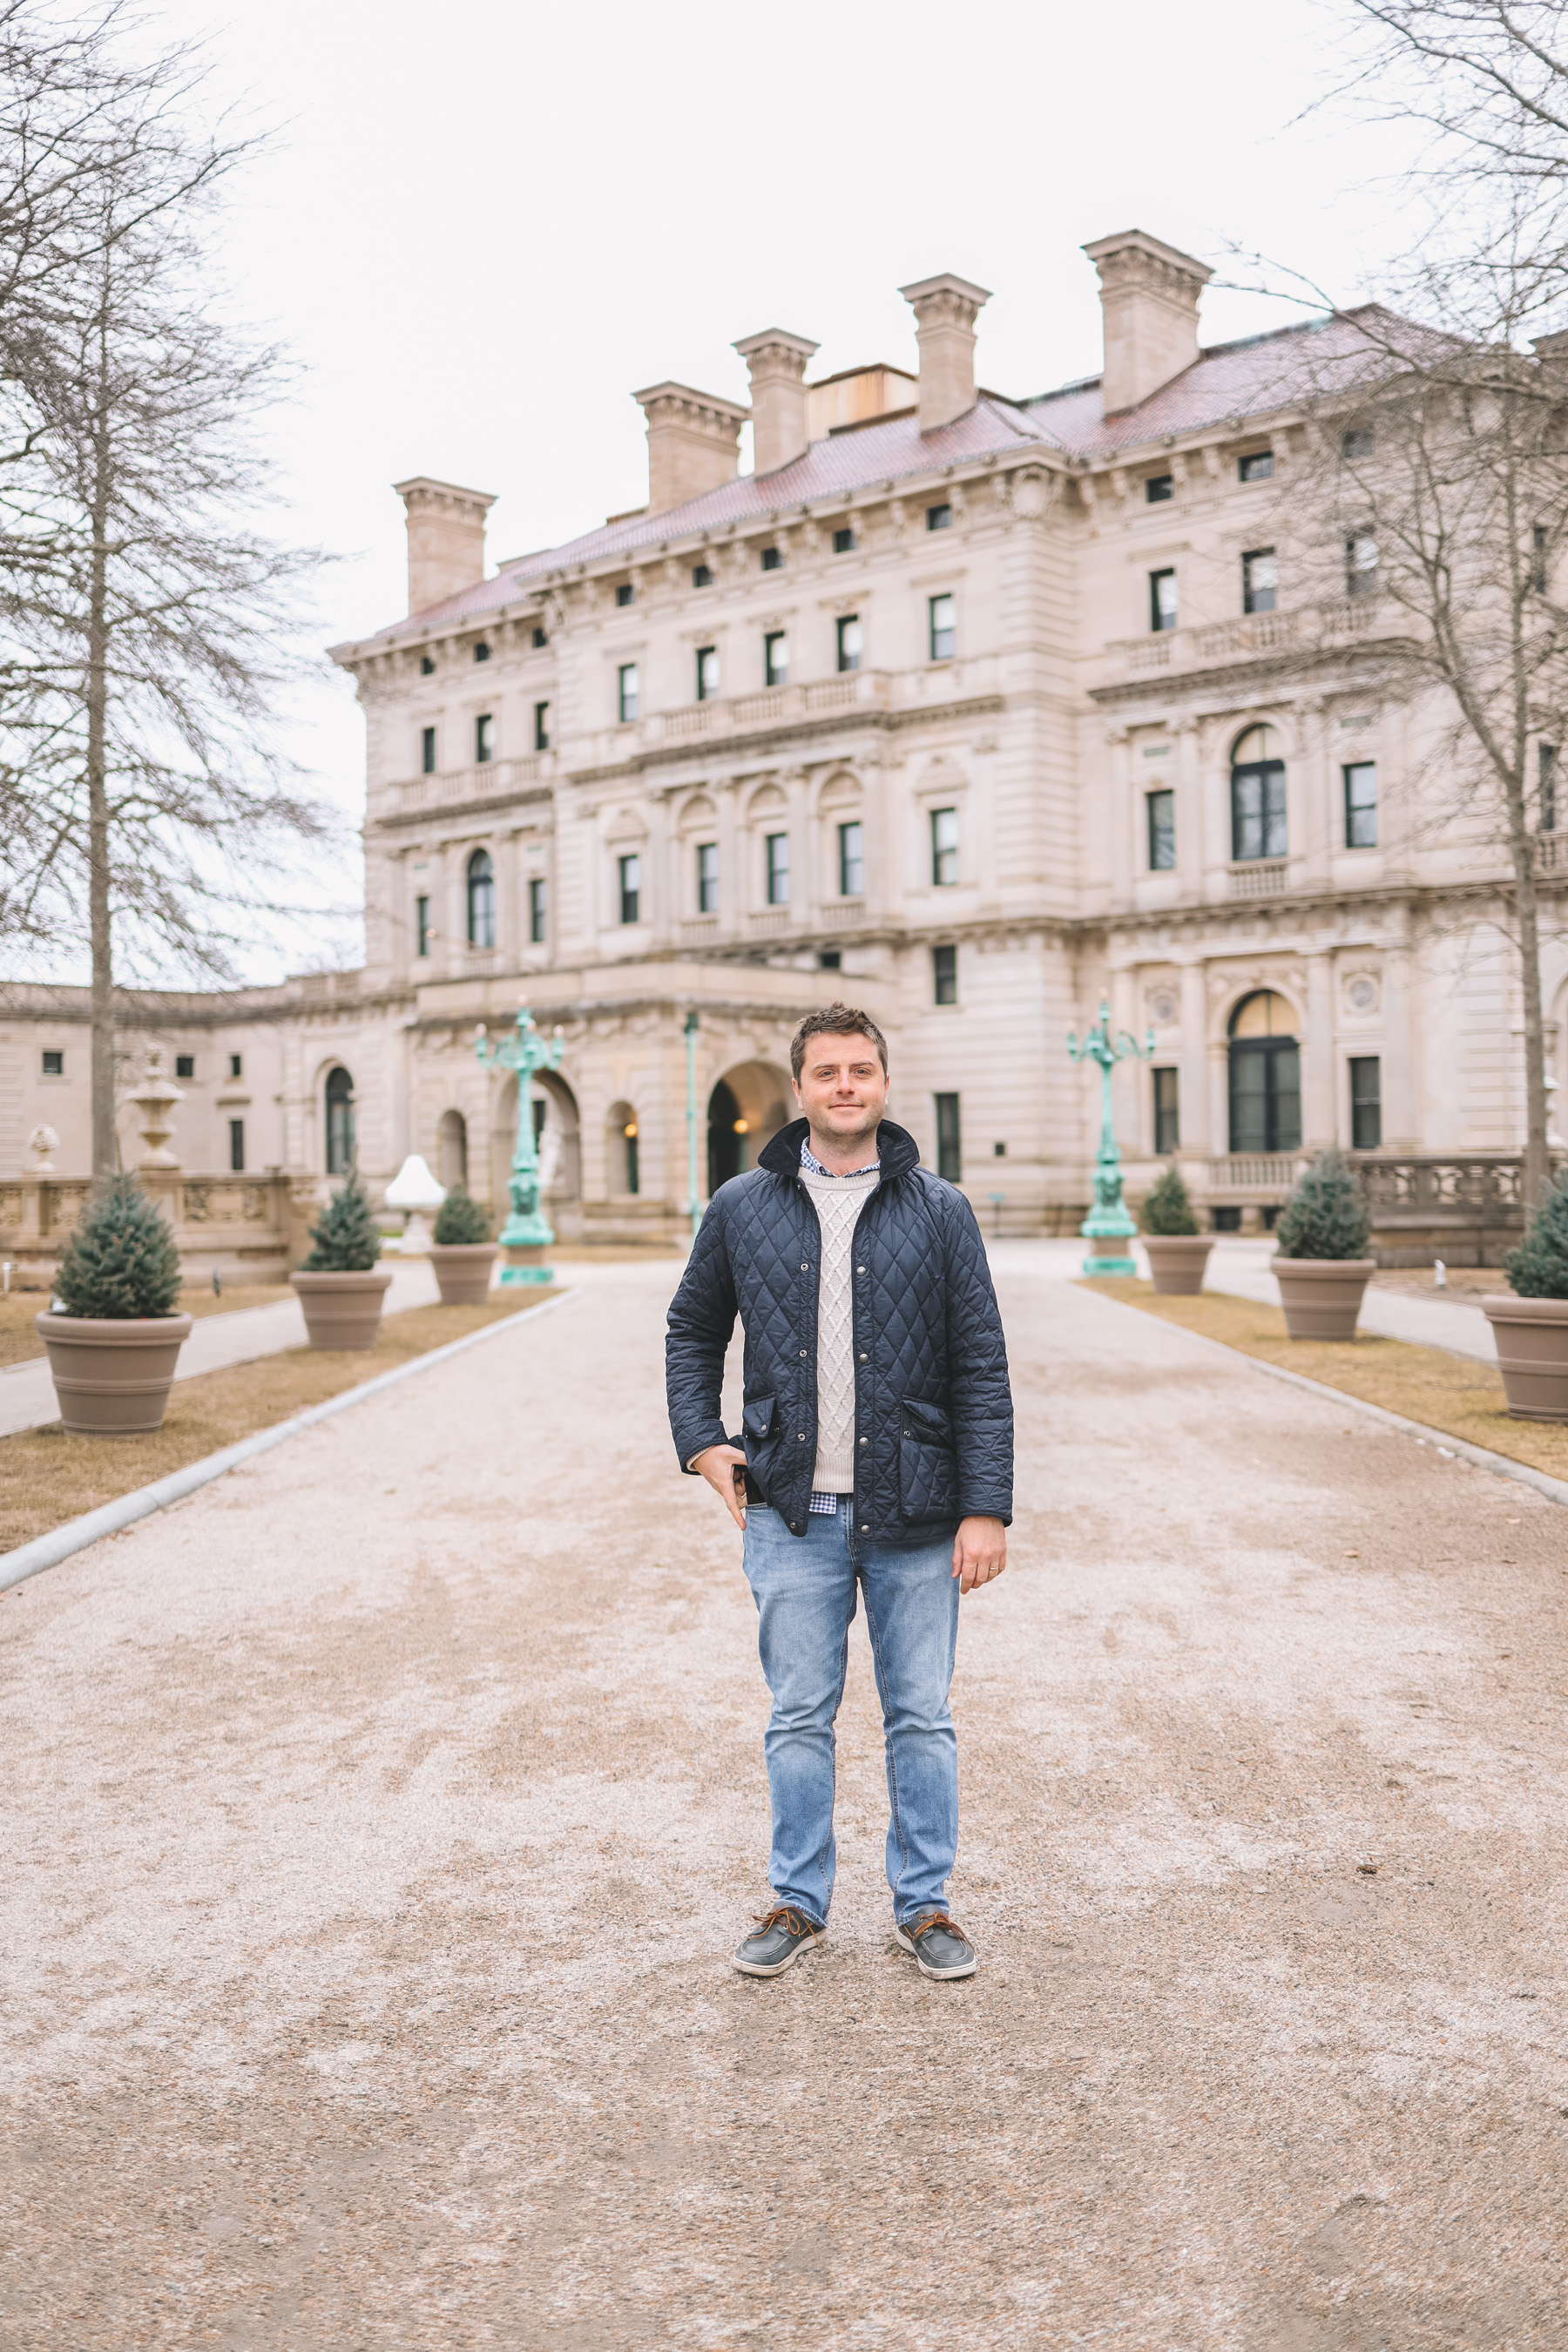 Mansion Tour: The Breakers - Newport